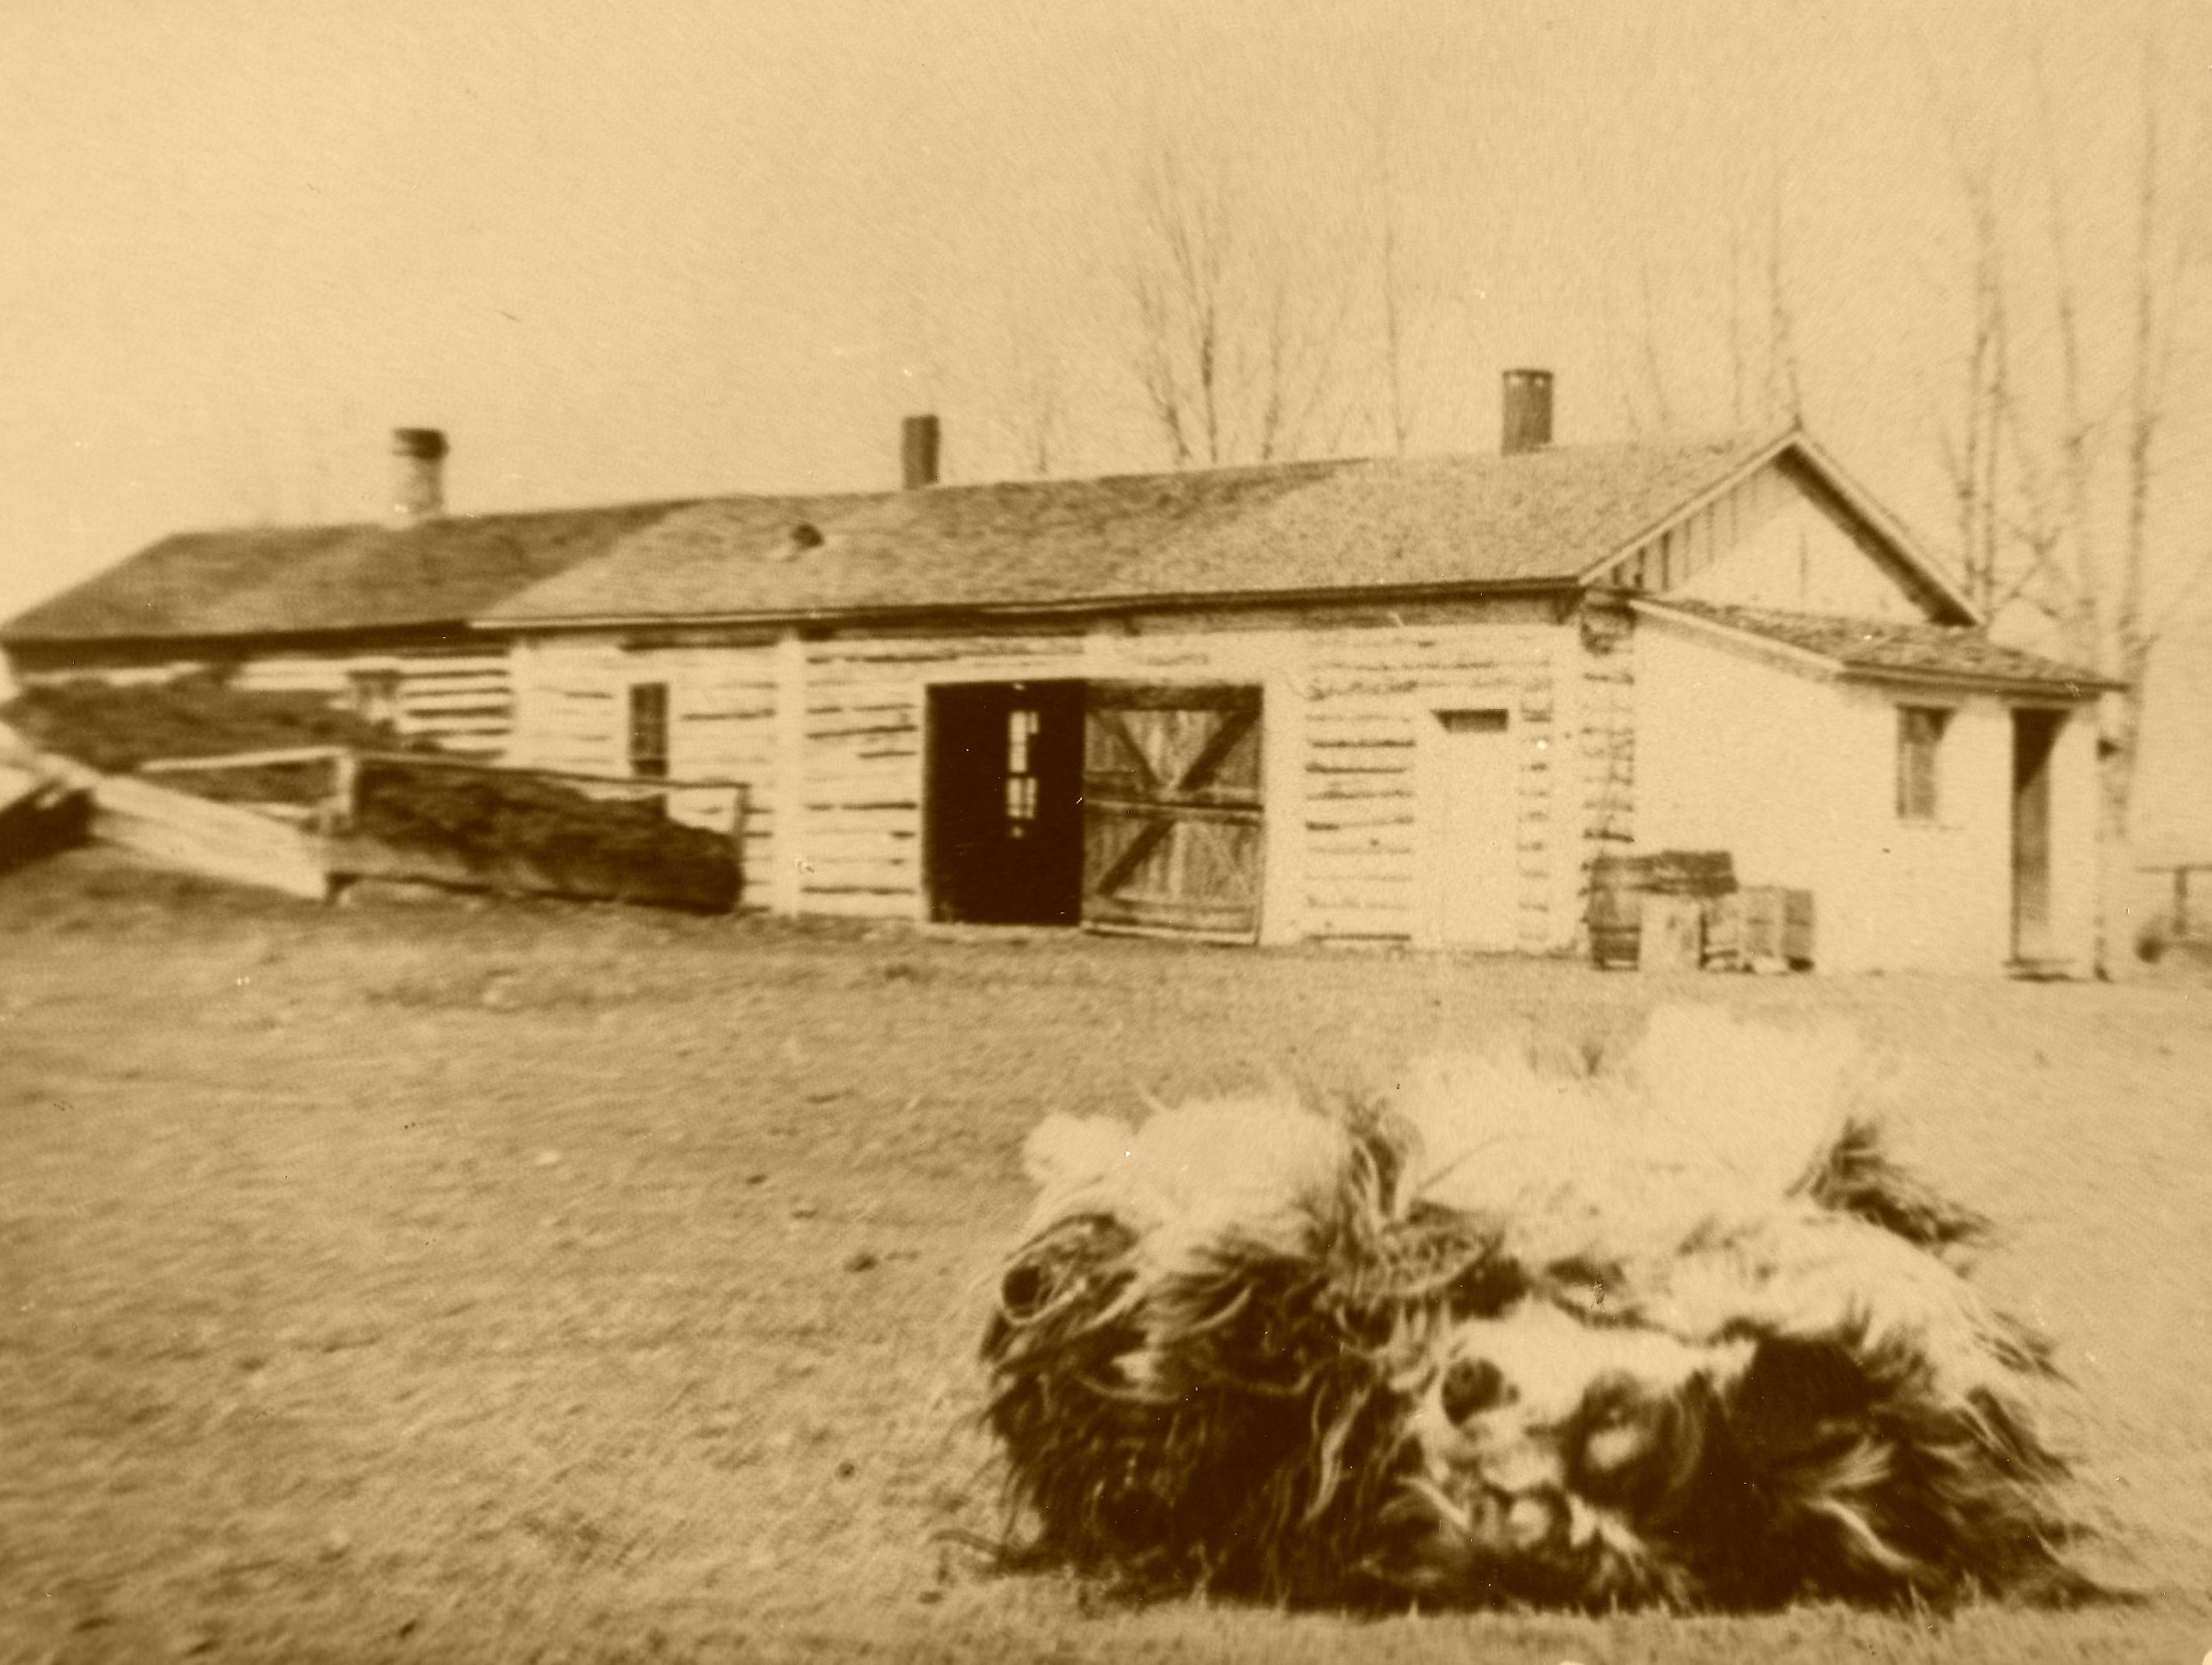 The Bunk House, 1892